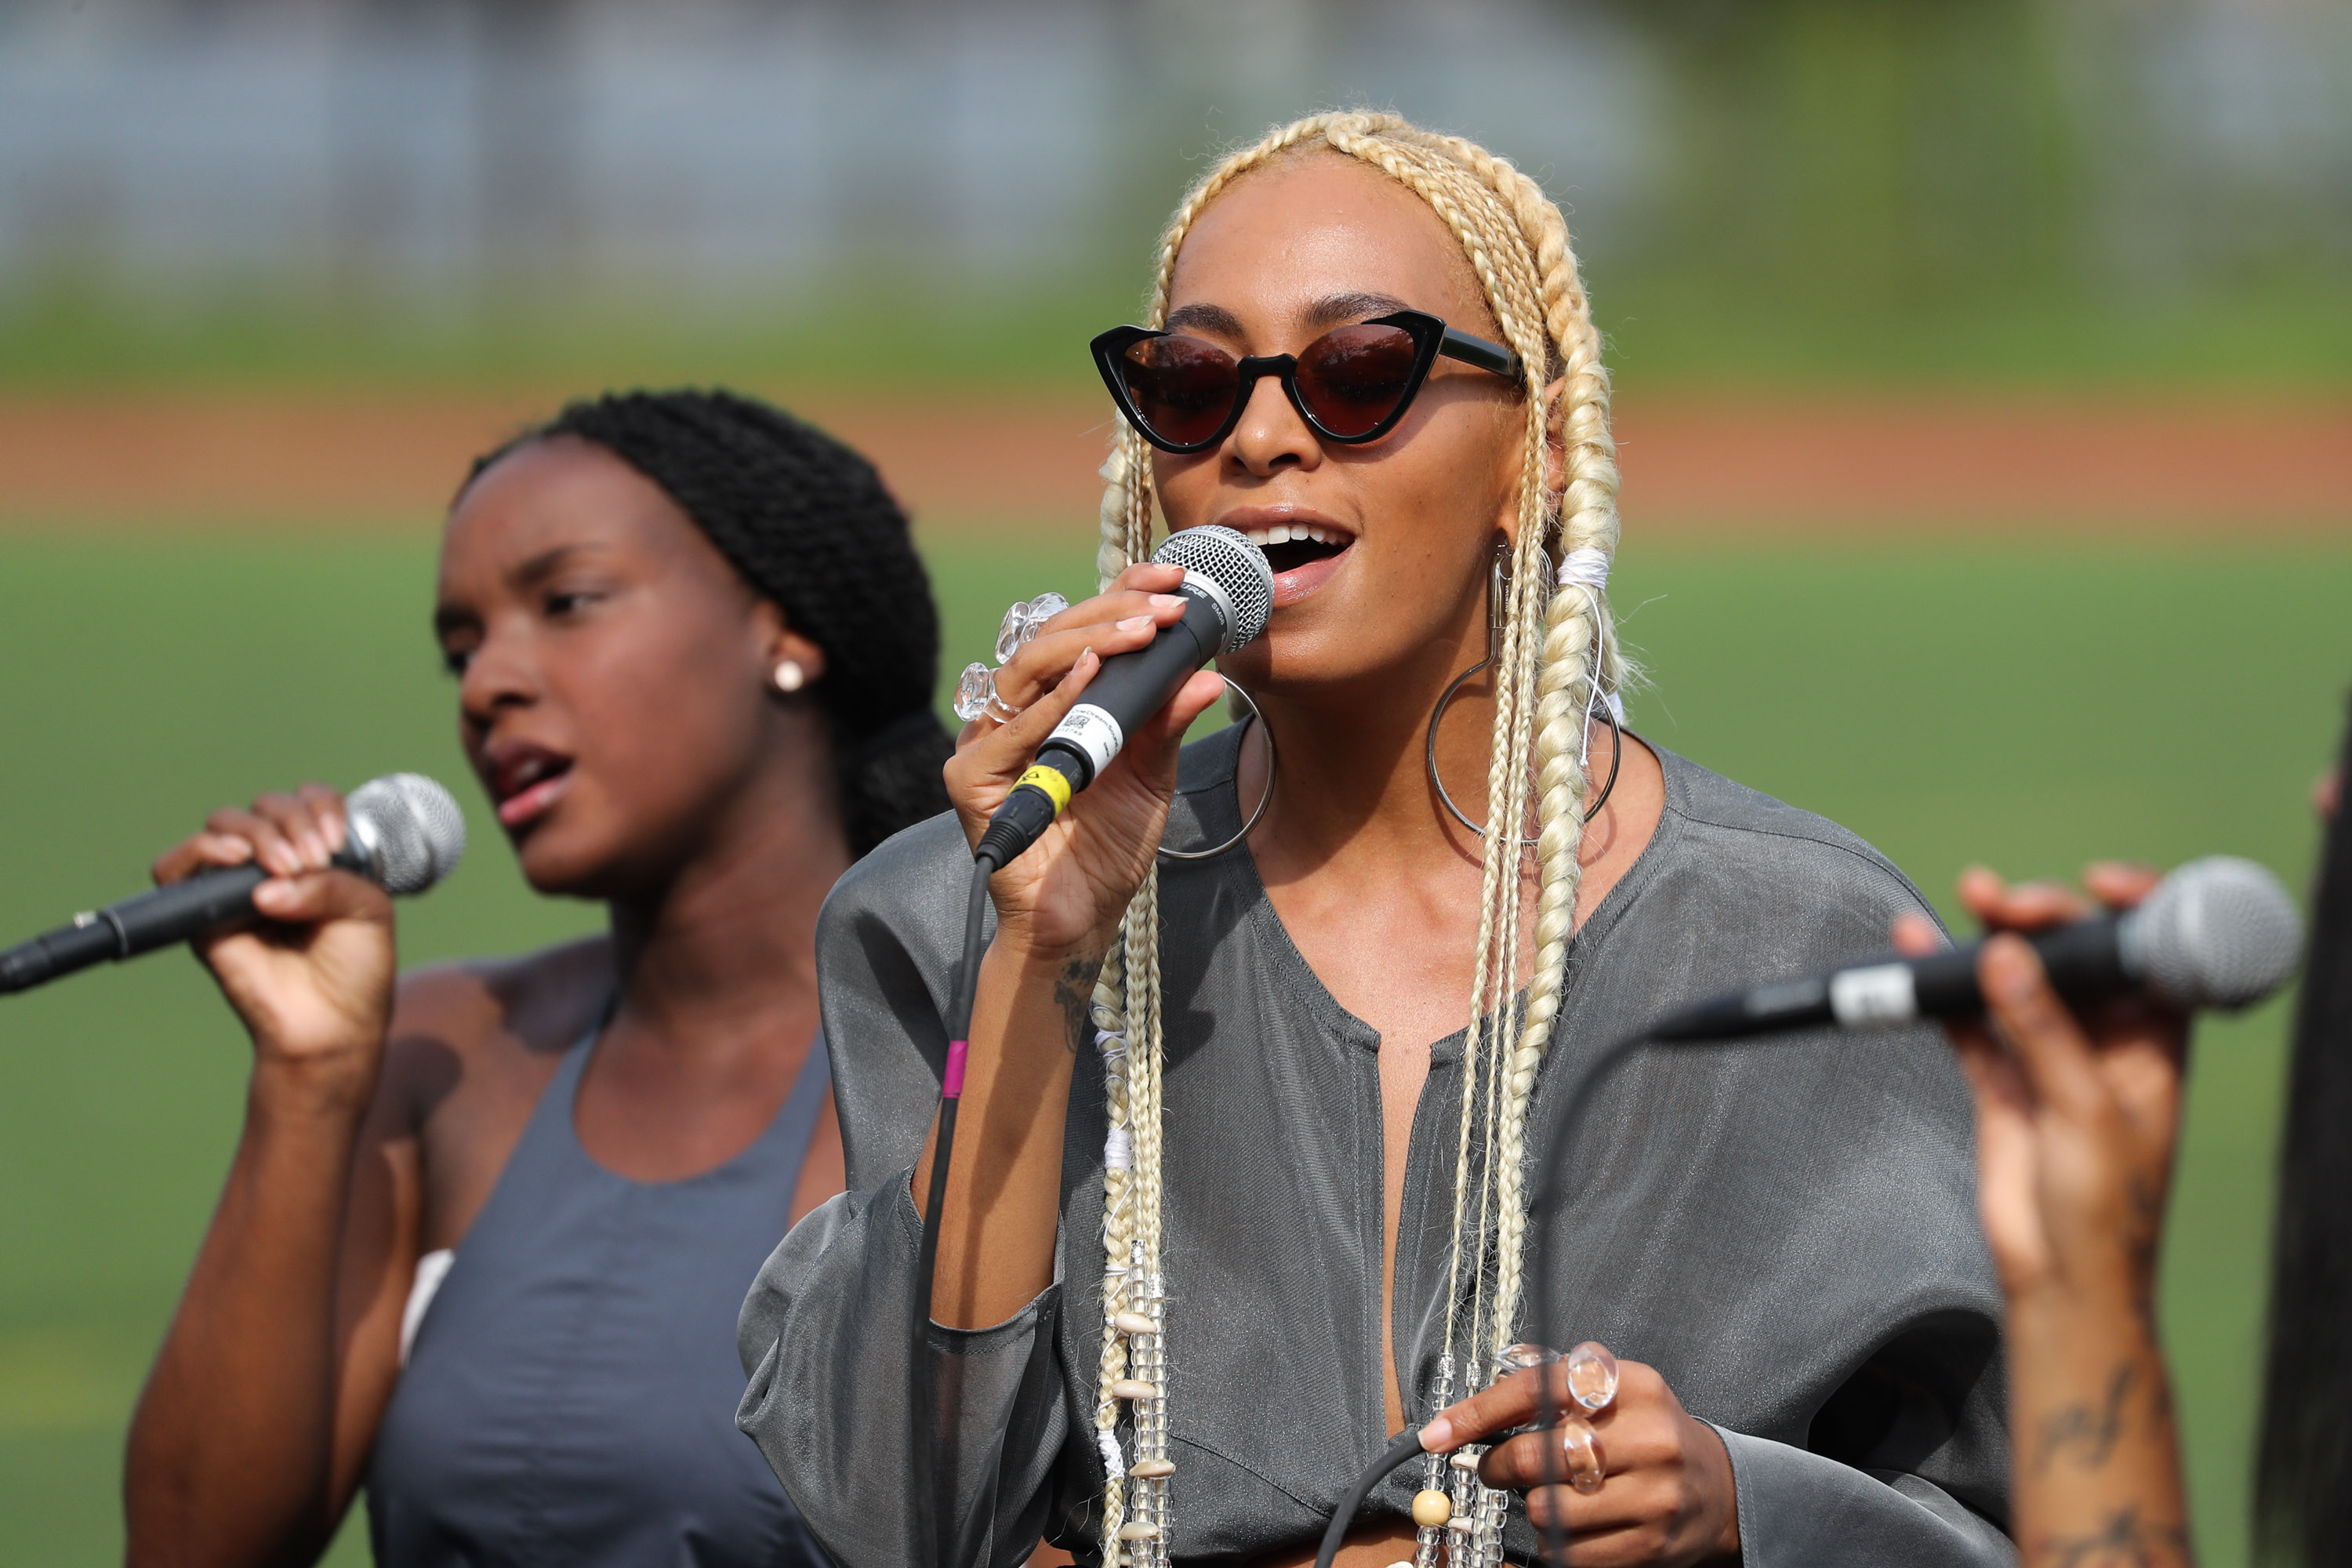 Solange is behind the mic, wearing a gray top by the designer.